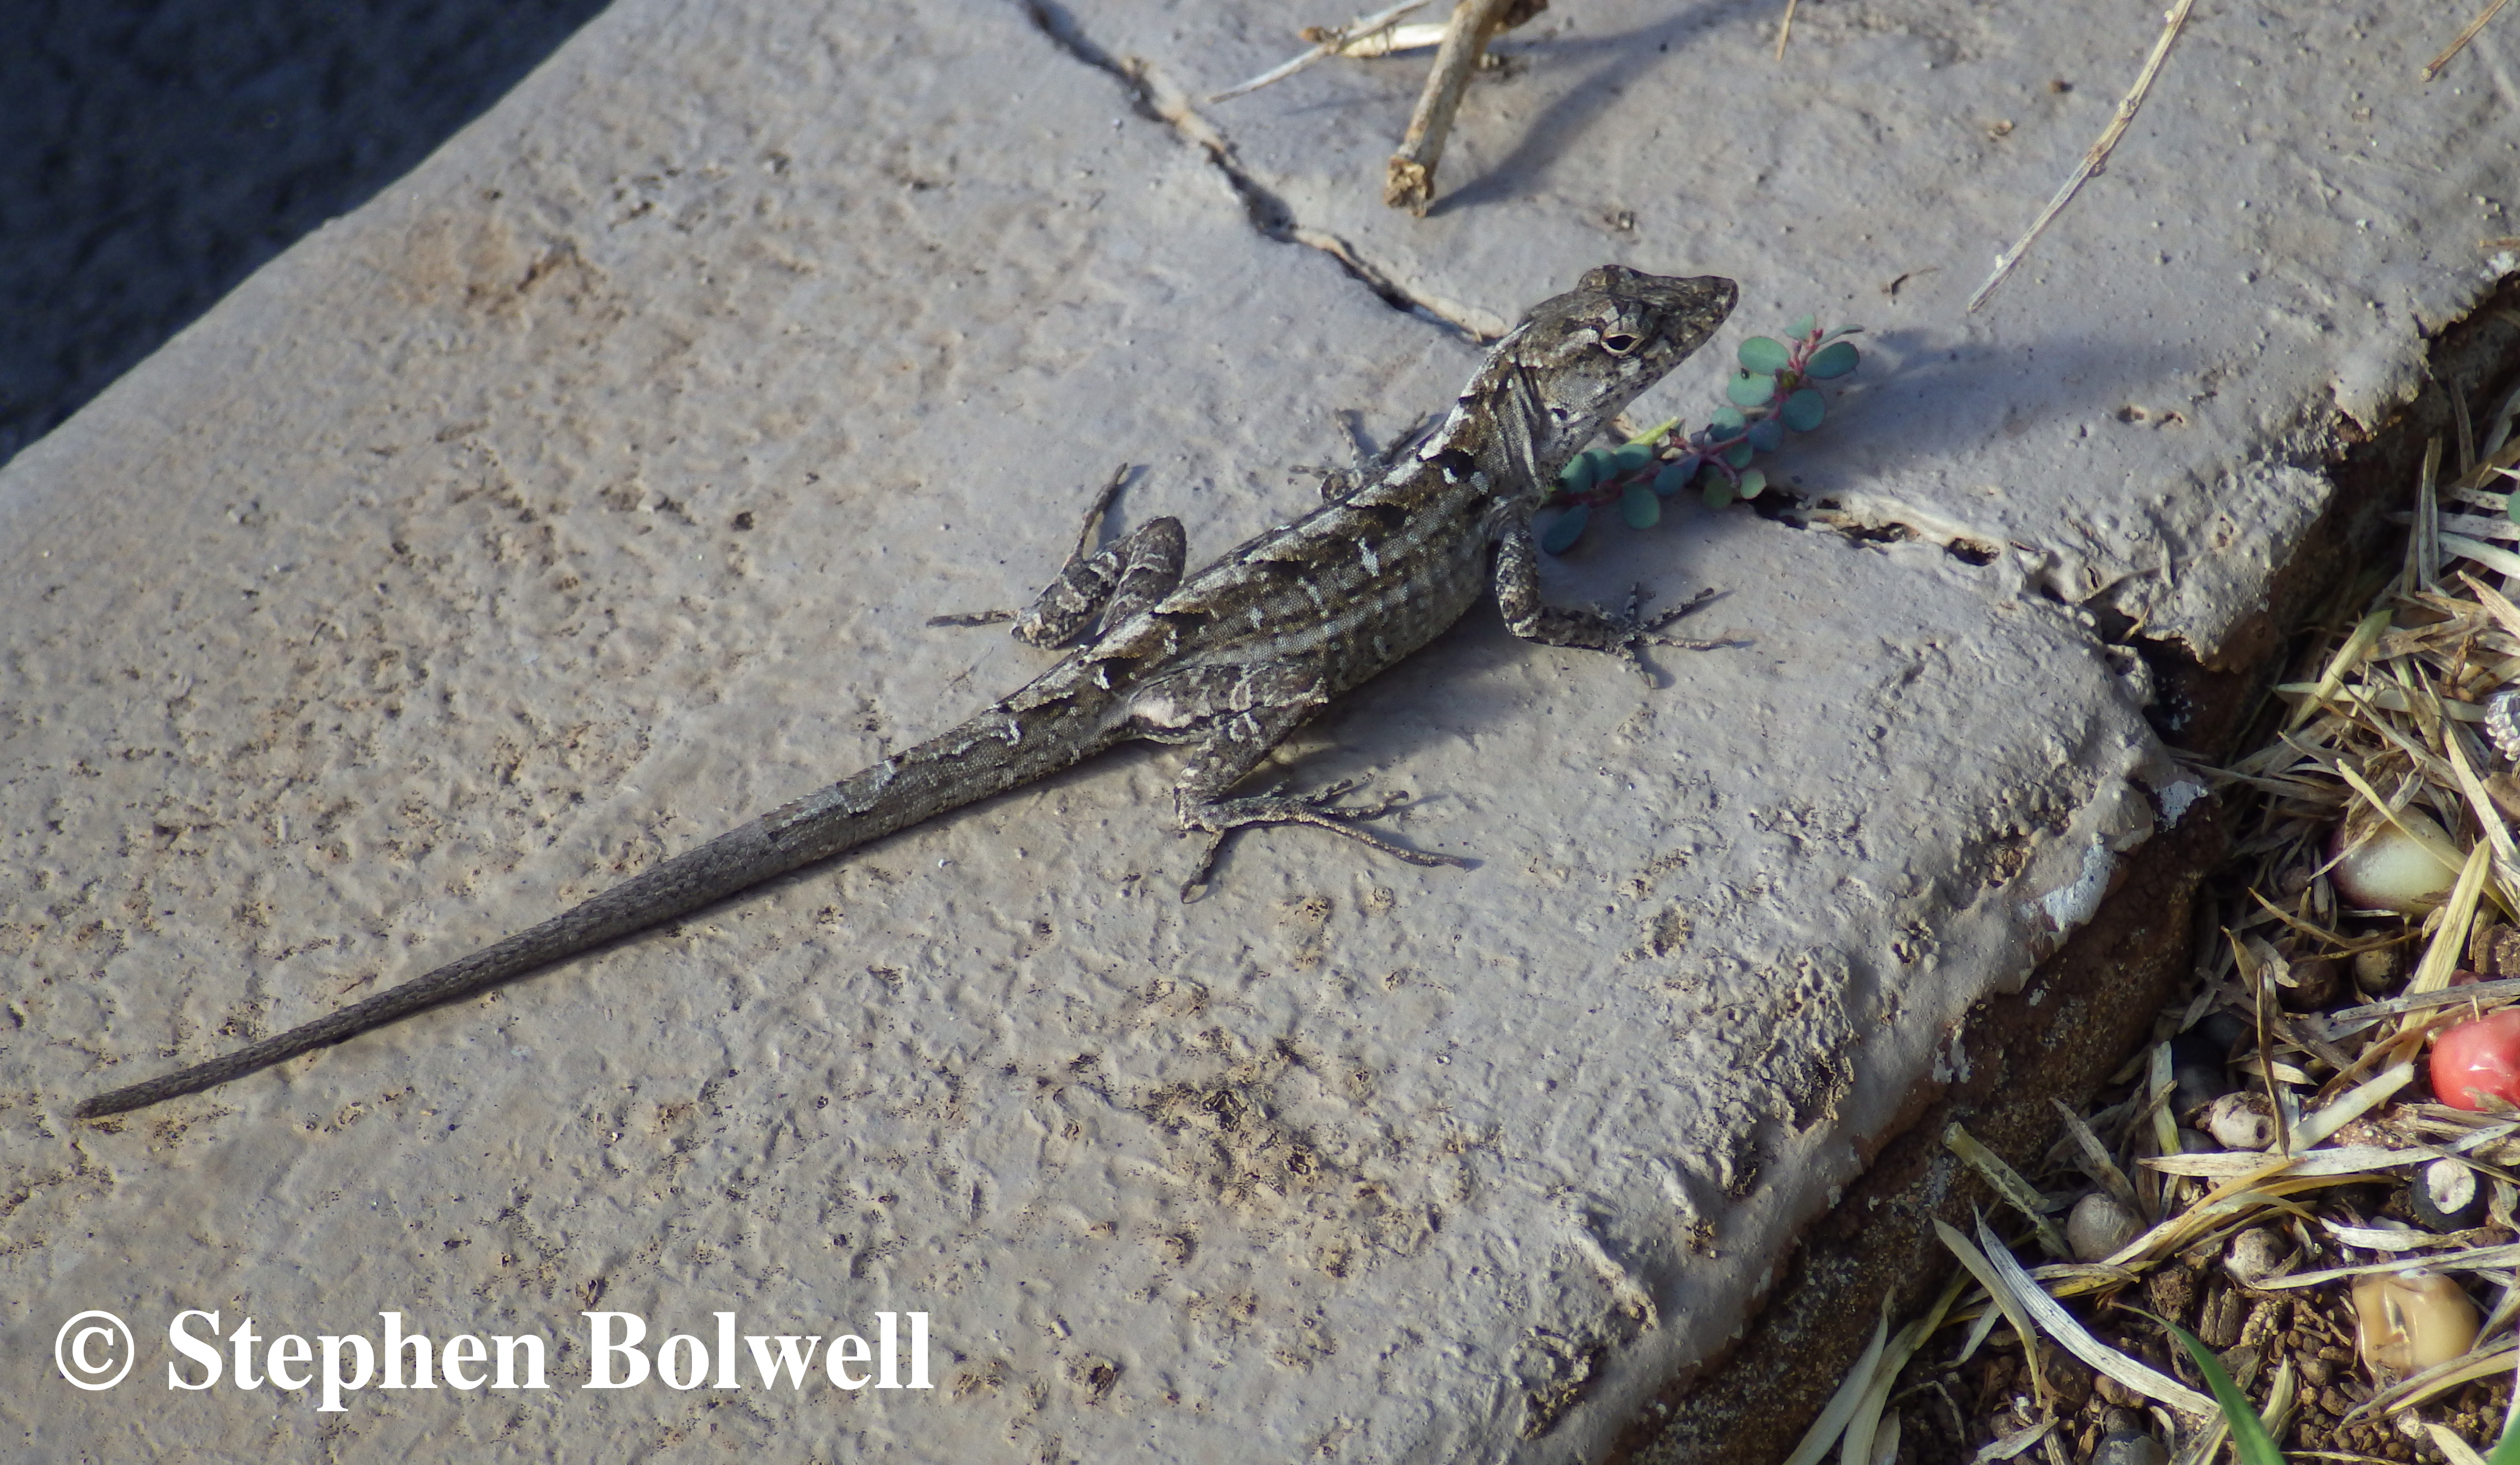 Brown Anoles are a recent introduction and have quickly become a serious pest